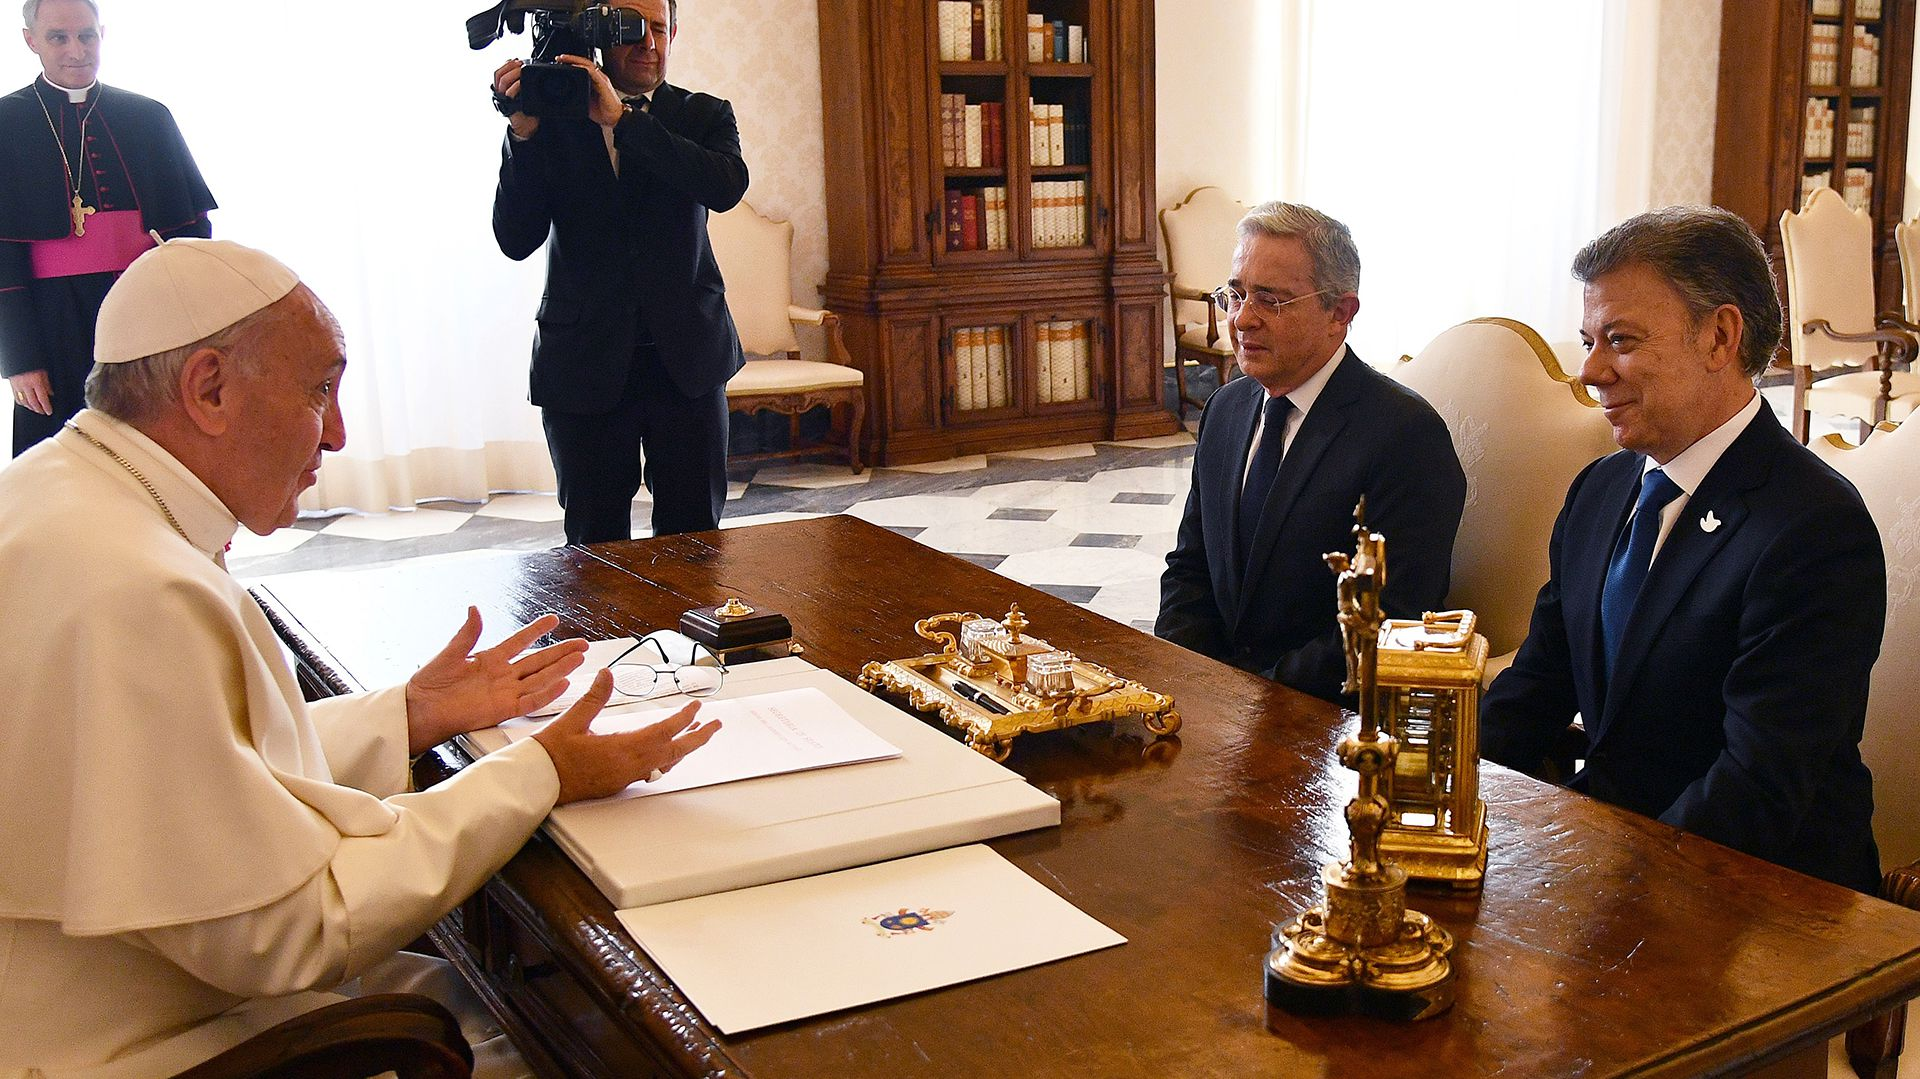 Pope Francis (l) speaks with Colombian president Juan Manuel Santos (R) and former president Alvaro Uribe prior to a meeting, on January 16, 2016 at the Vatican. / AFP PHOTO / POOL / VINCENZO PINTO